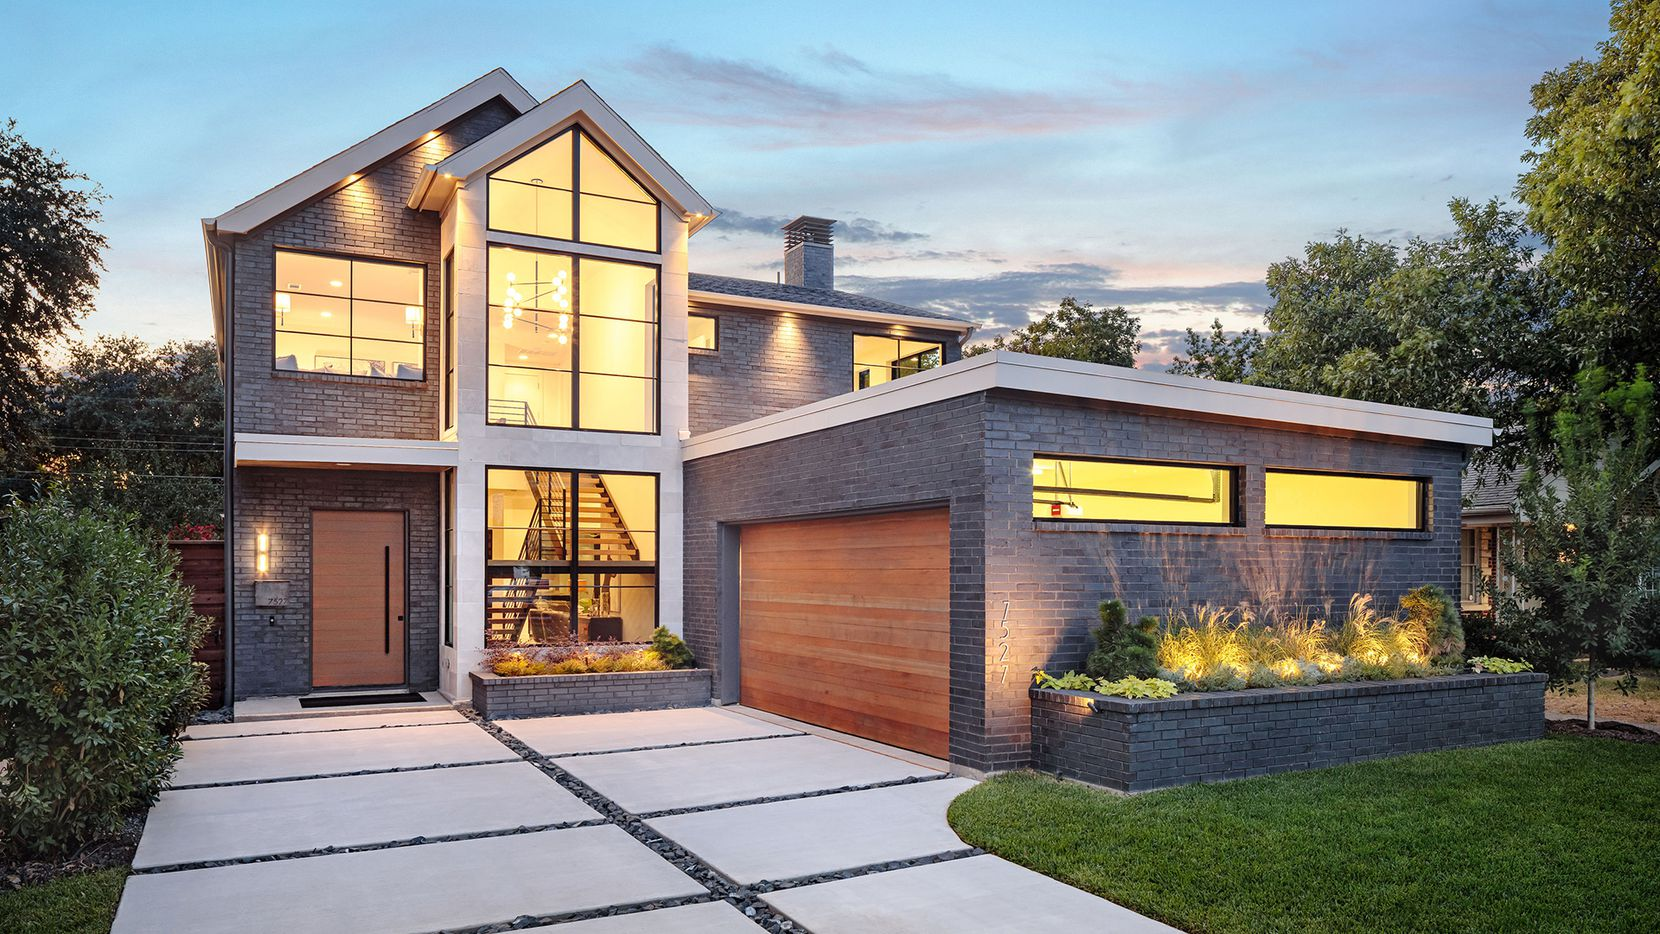 The new-construction smart home at 7527 Morton St. is by R.A. Millennium Properties. It is offered for $1,350,000.